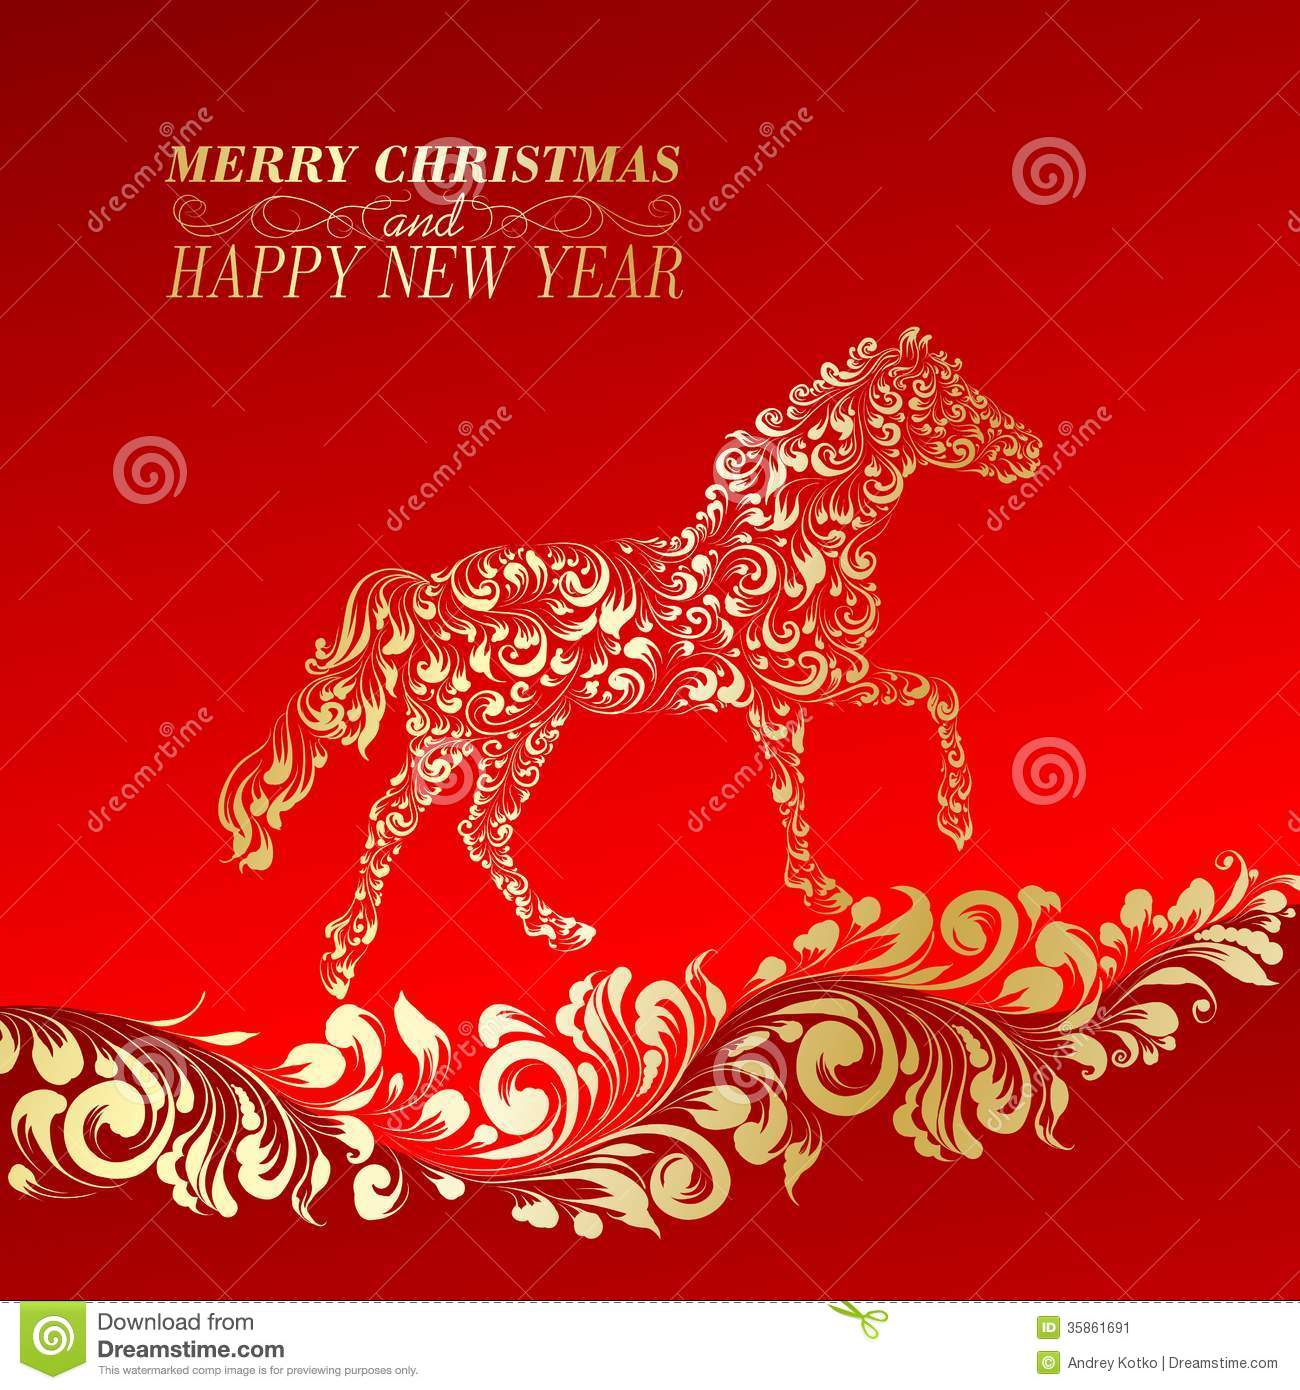 Christmas Greeting Card Stock Vector Illustration Of Nature 35861691